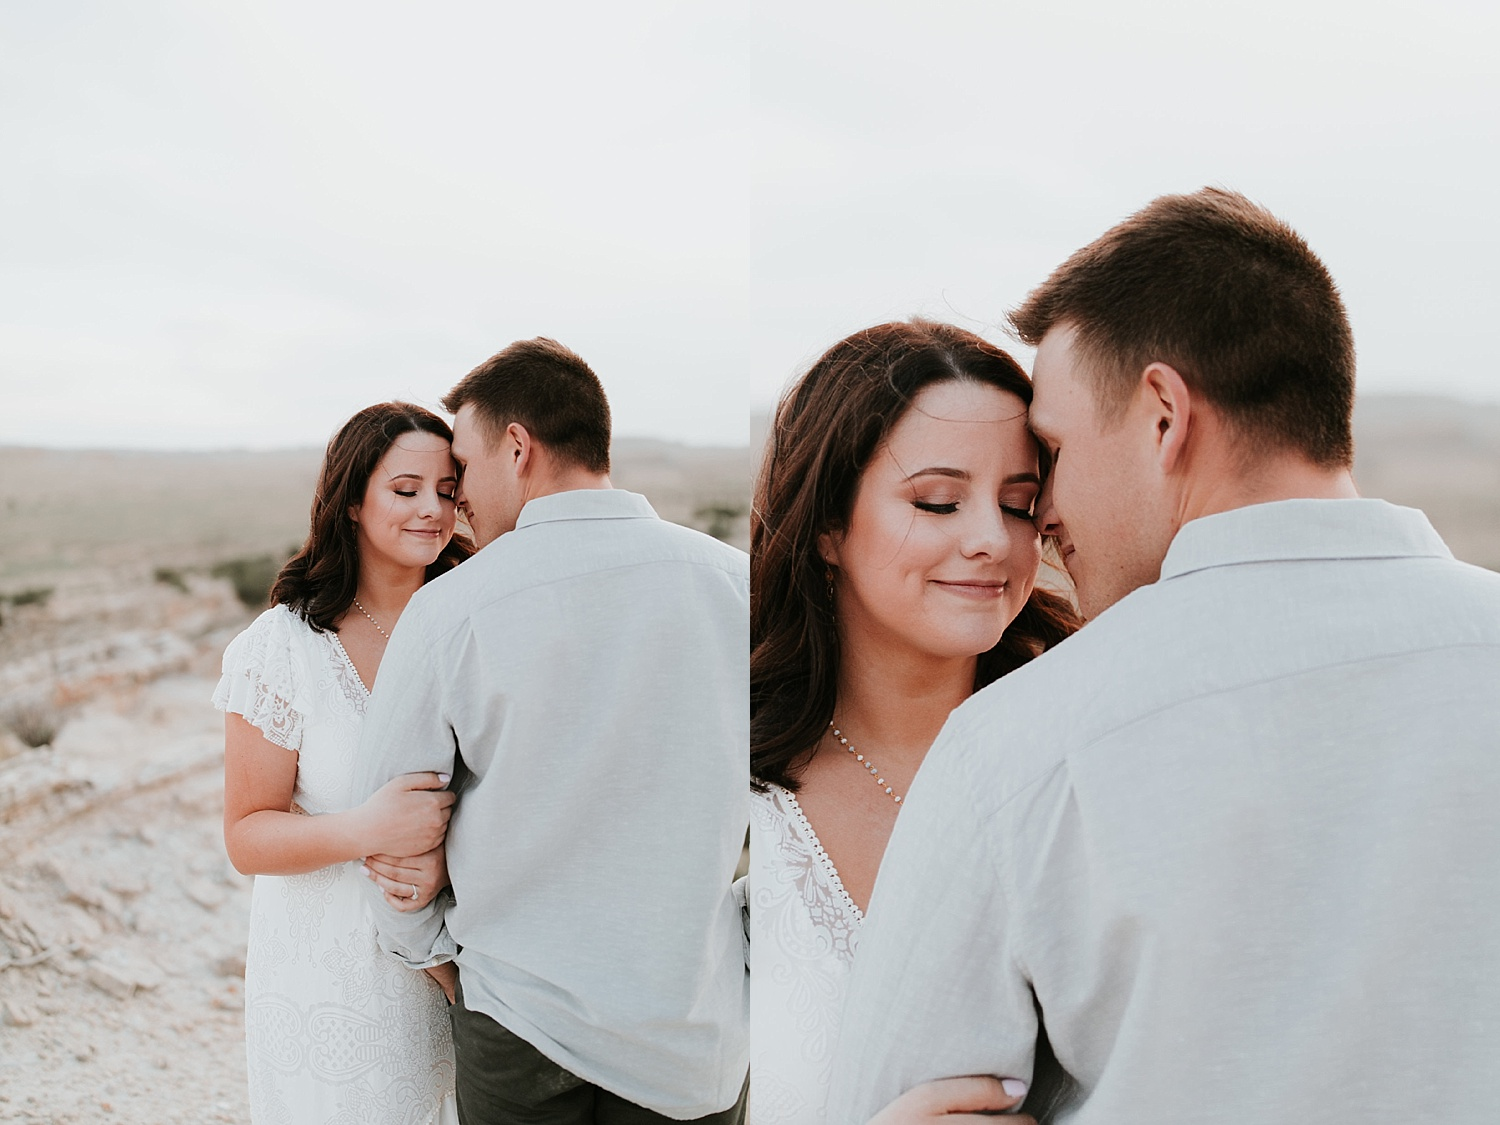 Alicia+lucia+photography+-+albuquerque+wedding+photographer+-+santa+fe+wedding+photography+-+new+mexico+wedding+photographer+-+new+mexico+engagement+-+desert+engagement_0026.jpg